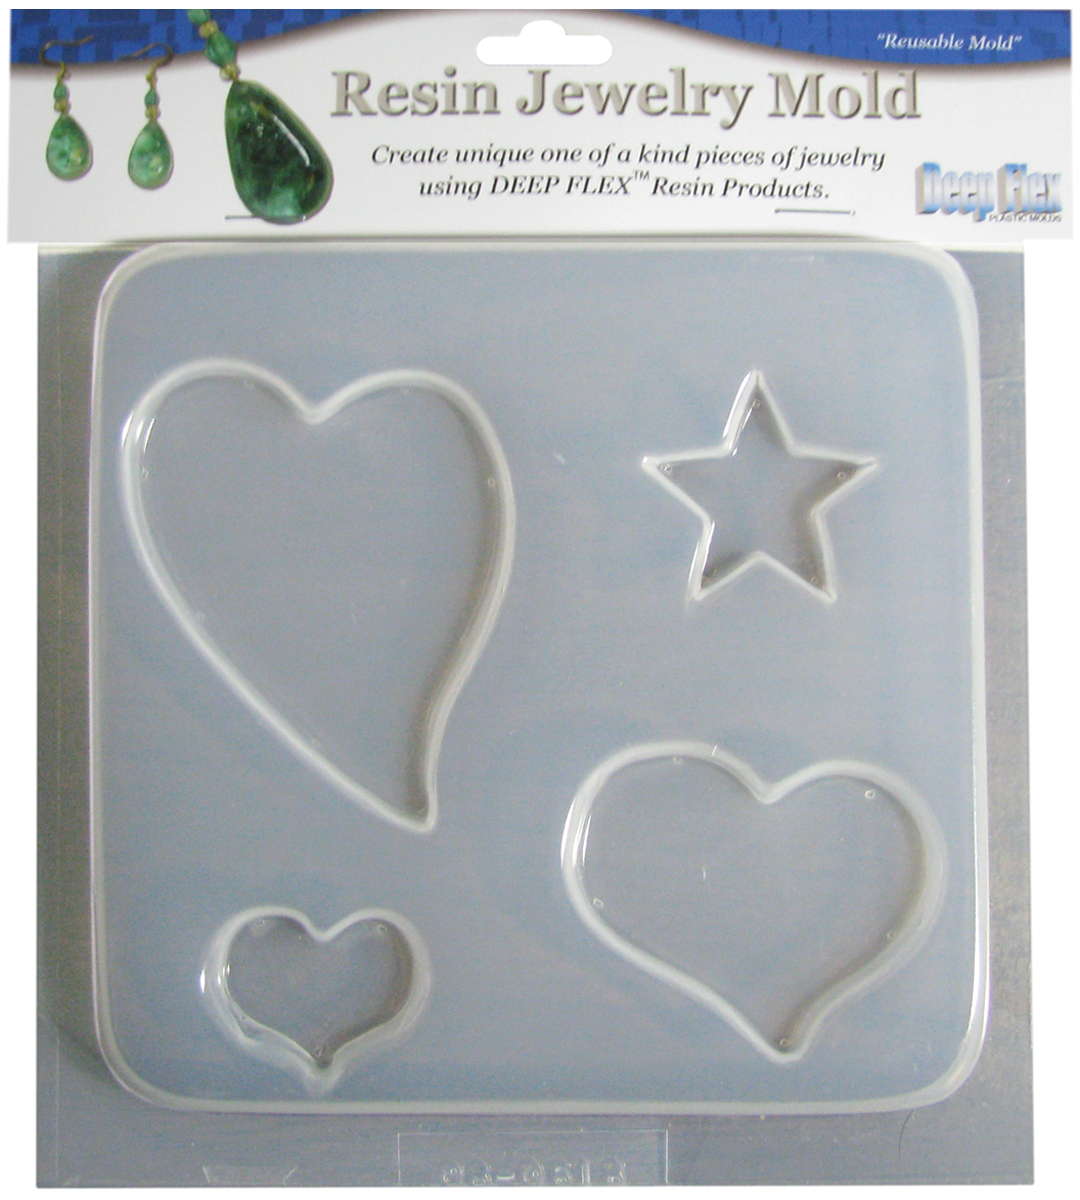 Yaley Deep Flex Resin Jewelry Mold 4 Cavity Hearts/Stars